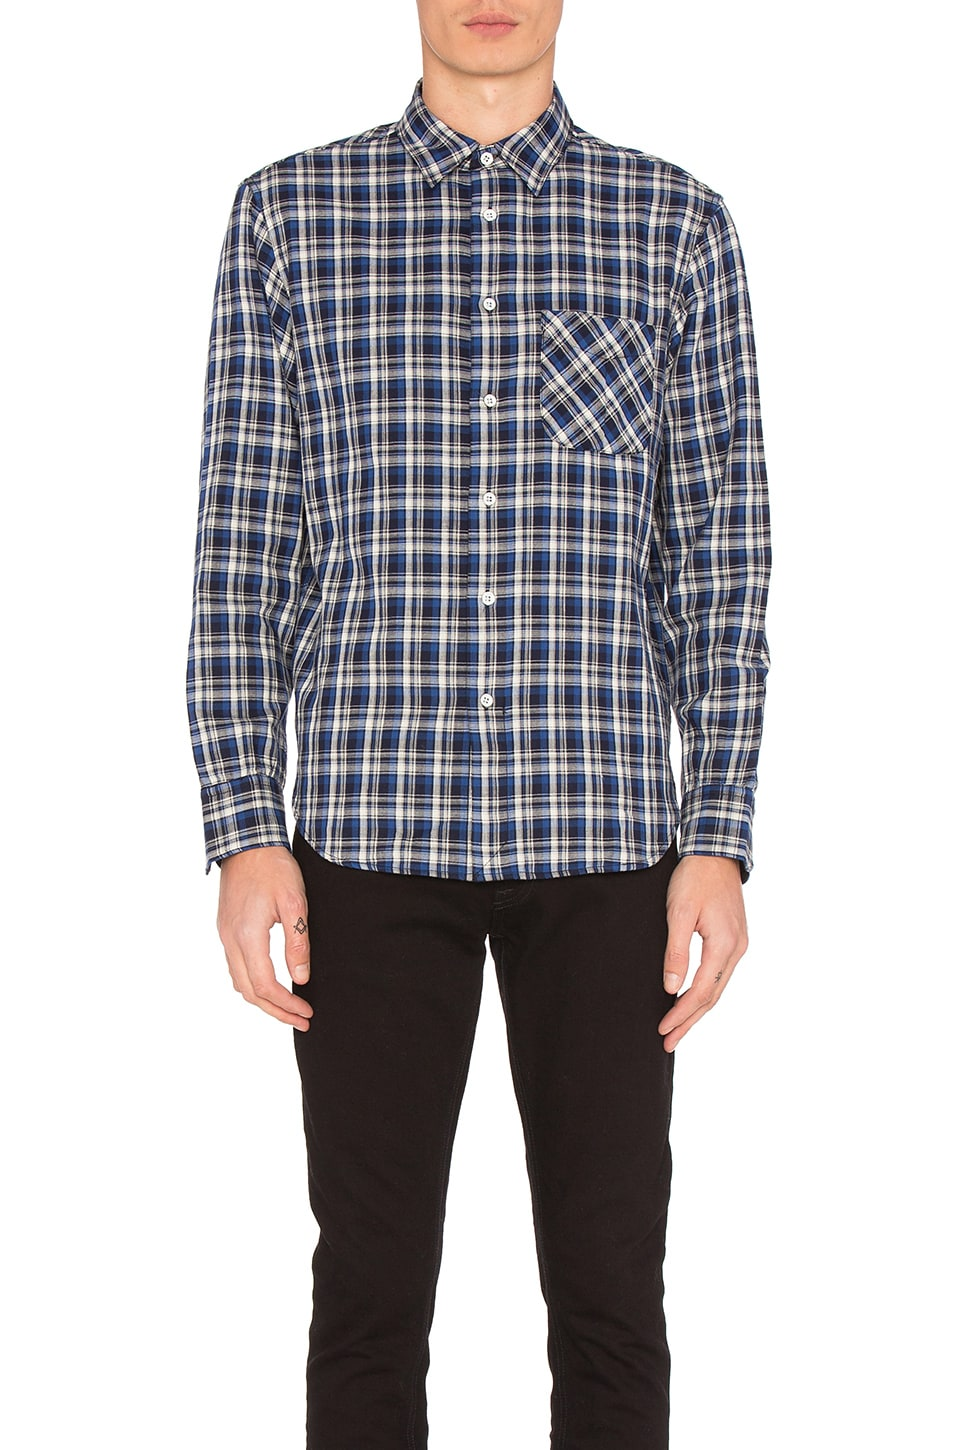 Beach Shirt by Rag & Bone